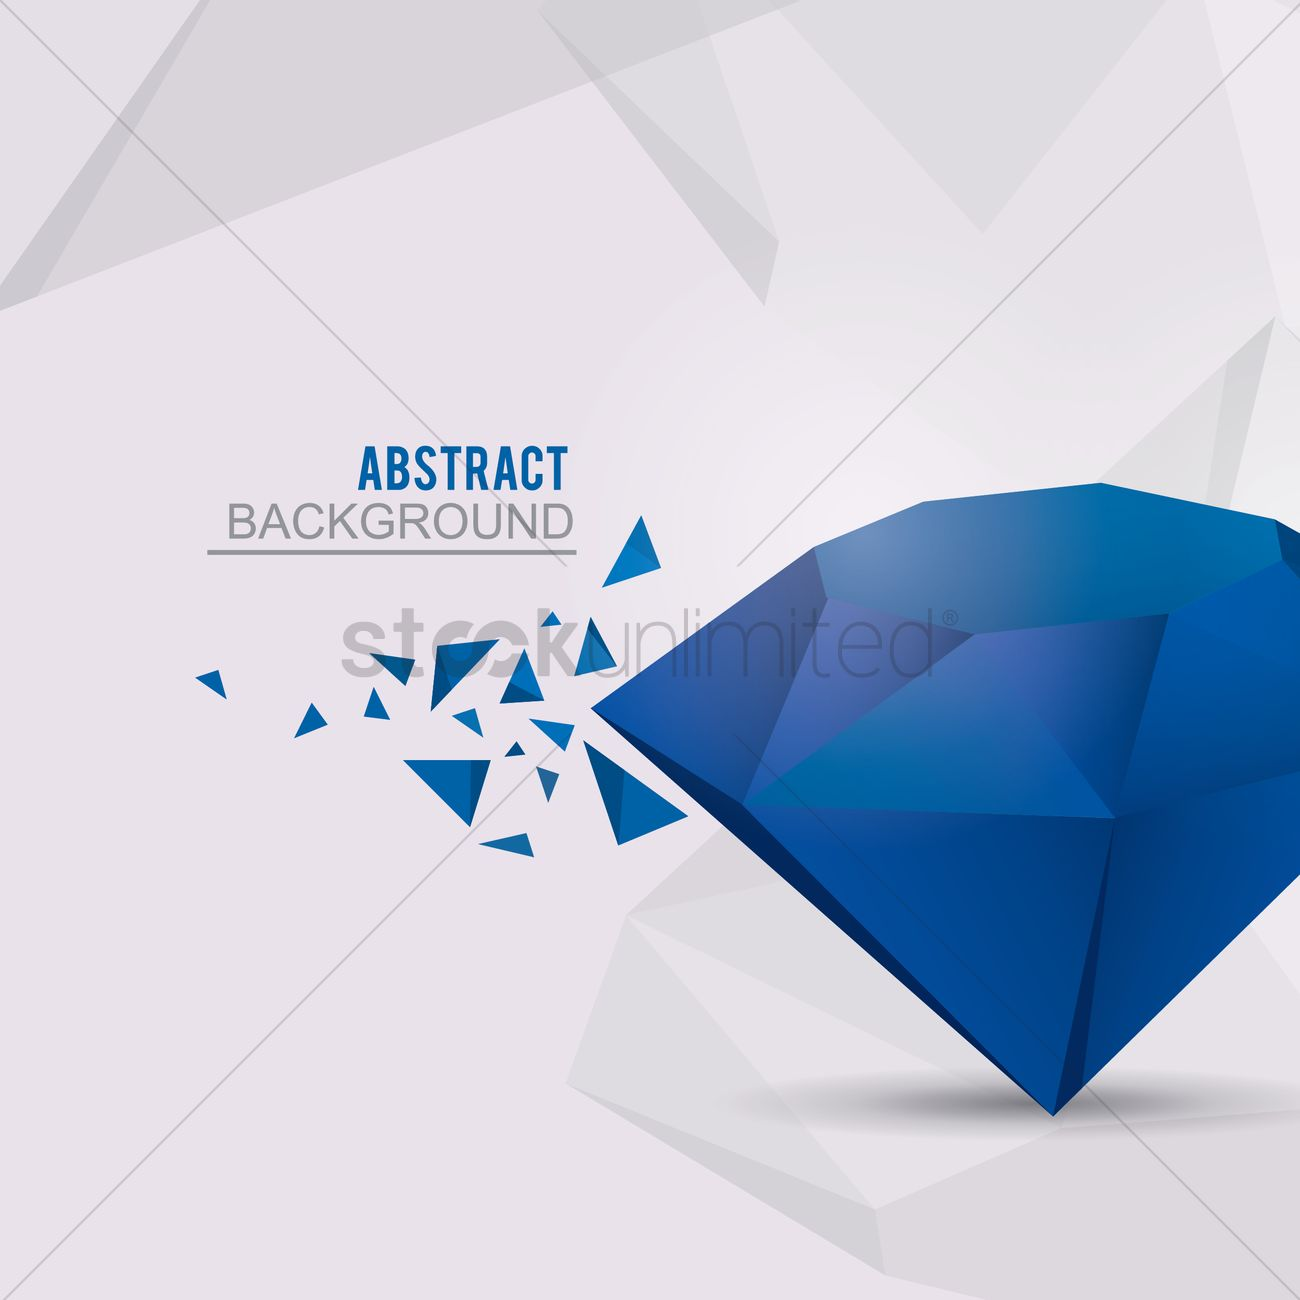 Abstract diamond background Vector Image - 1331438 | StockUnlimited